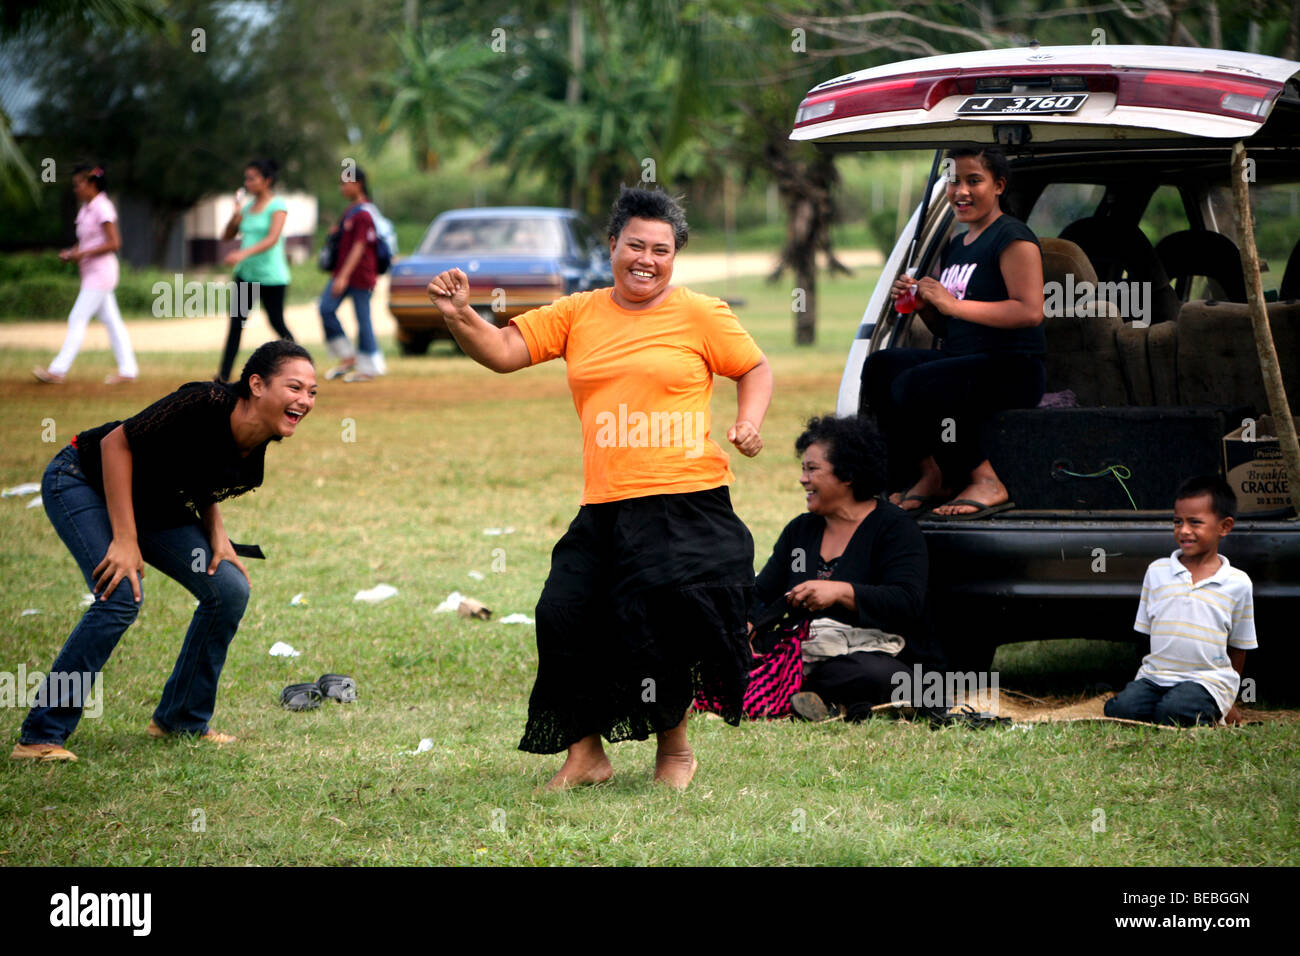 Tongan women brake into an impromtu dance after their team scores a try during a Saturday rugby match. - Stock Image